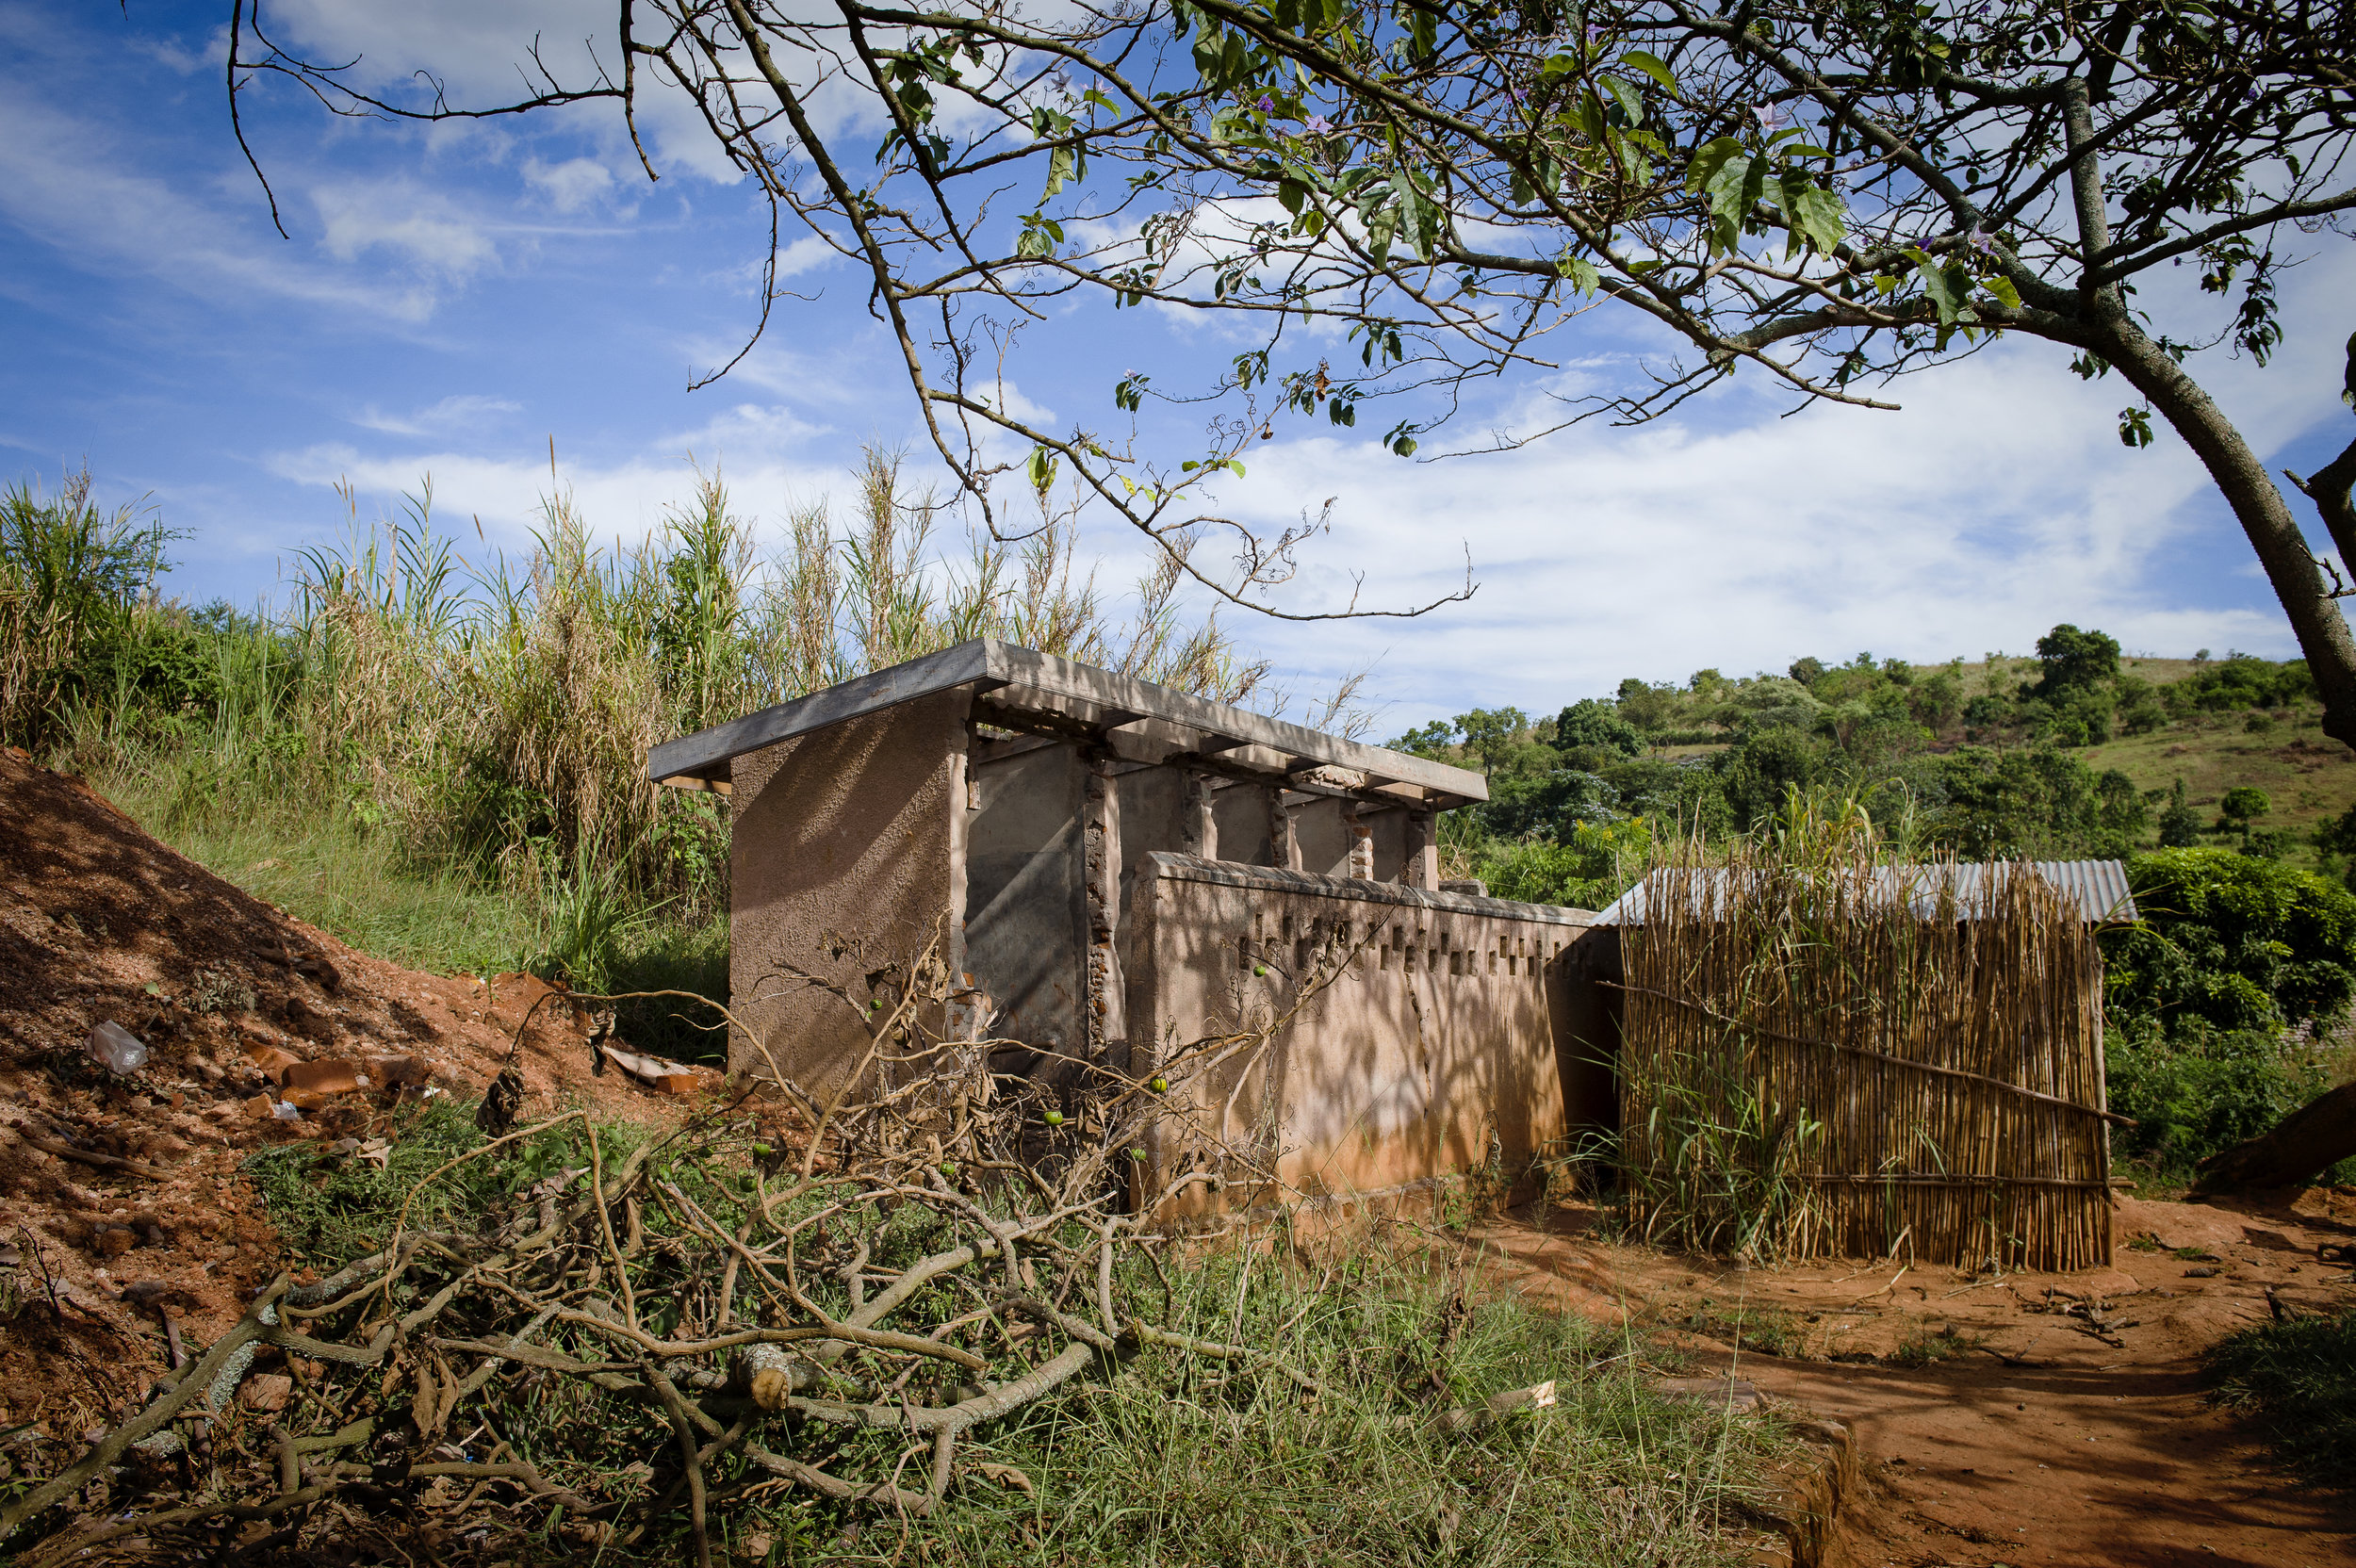 Old toilet blocks at Kikoda Primary school, which had collapsed during heavy rainfall